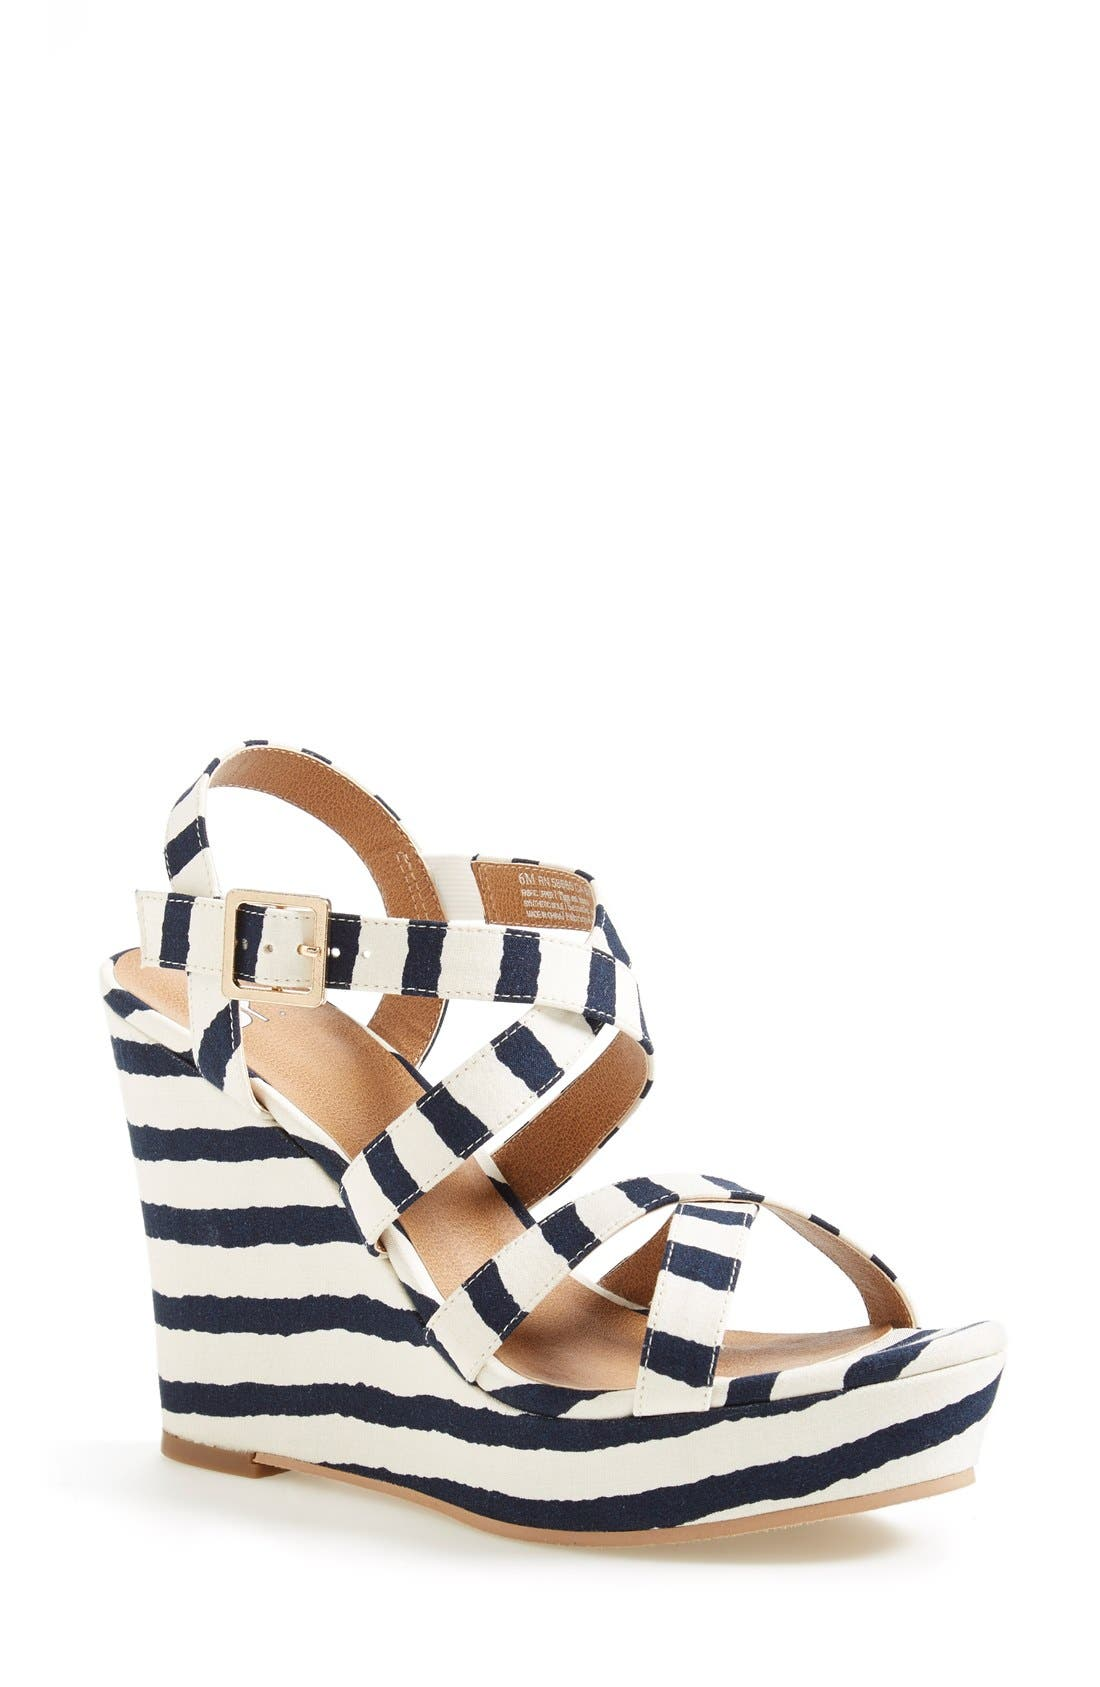 Alternate Image 1 Selected - BP. 'Summers' Wedge Sandal (Women)